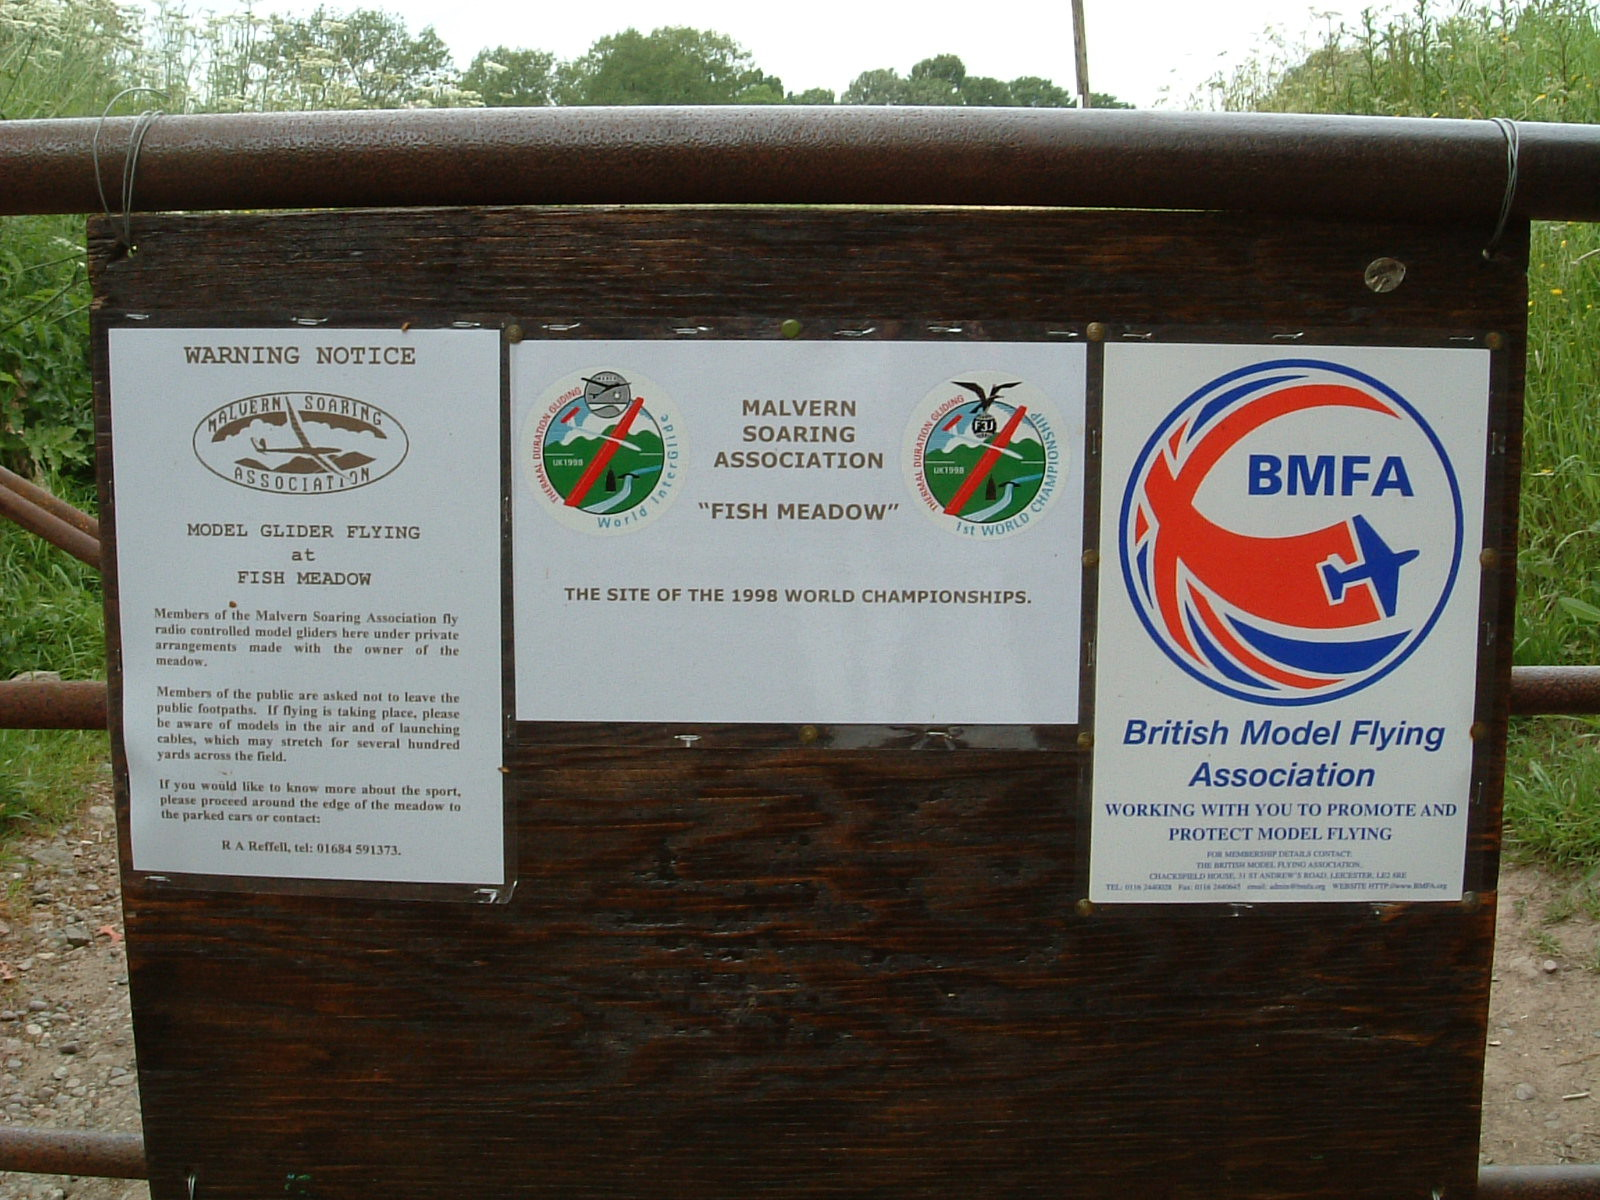 Notices about flying model aeroplanes in Upton-upon-Severn